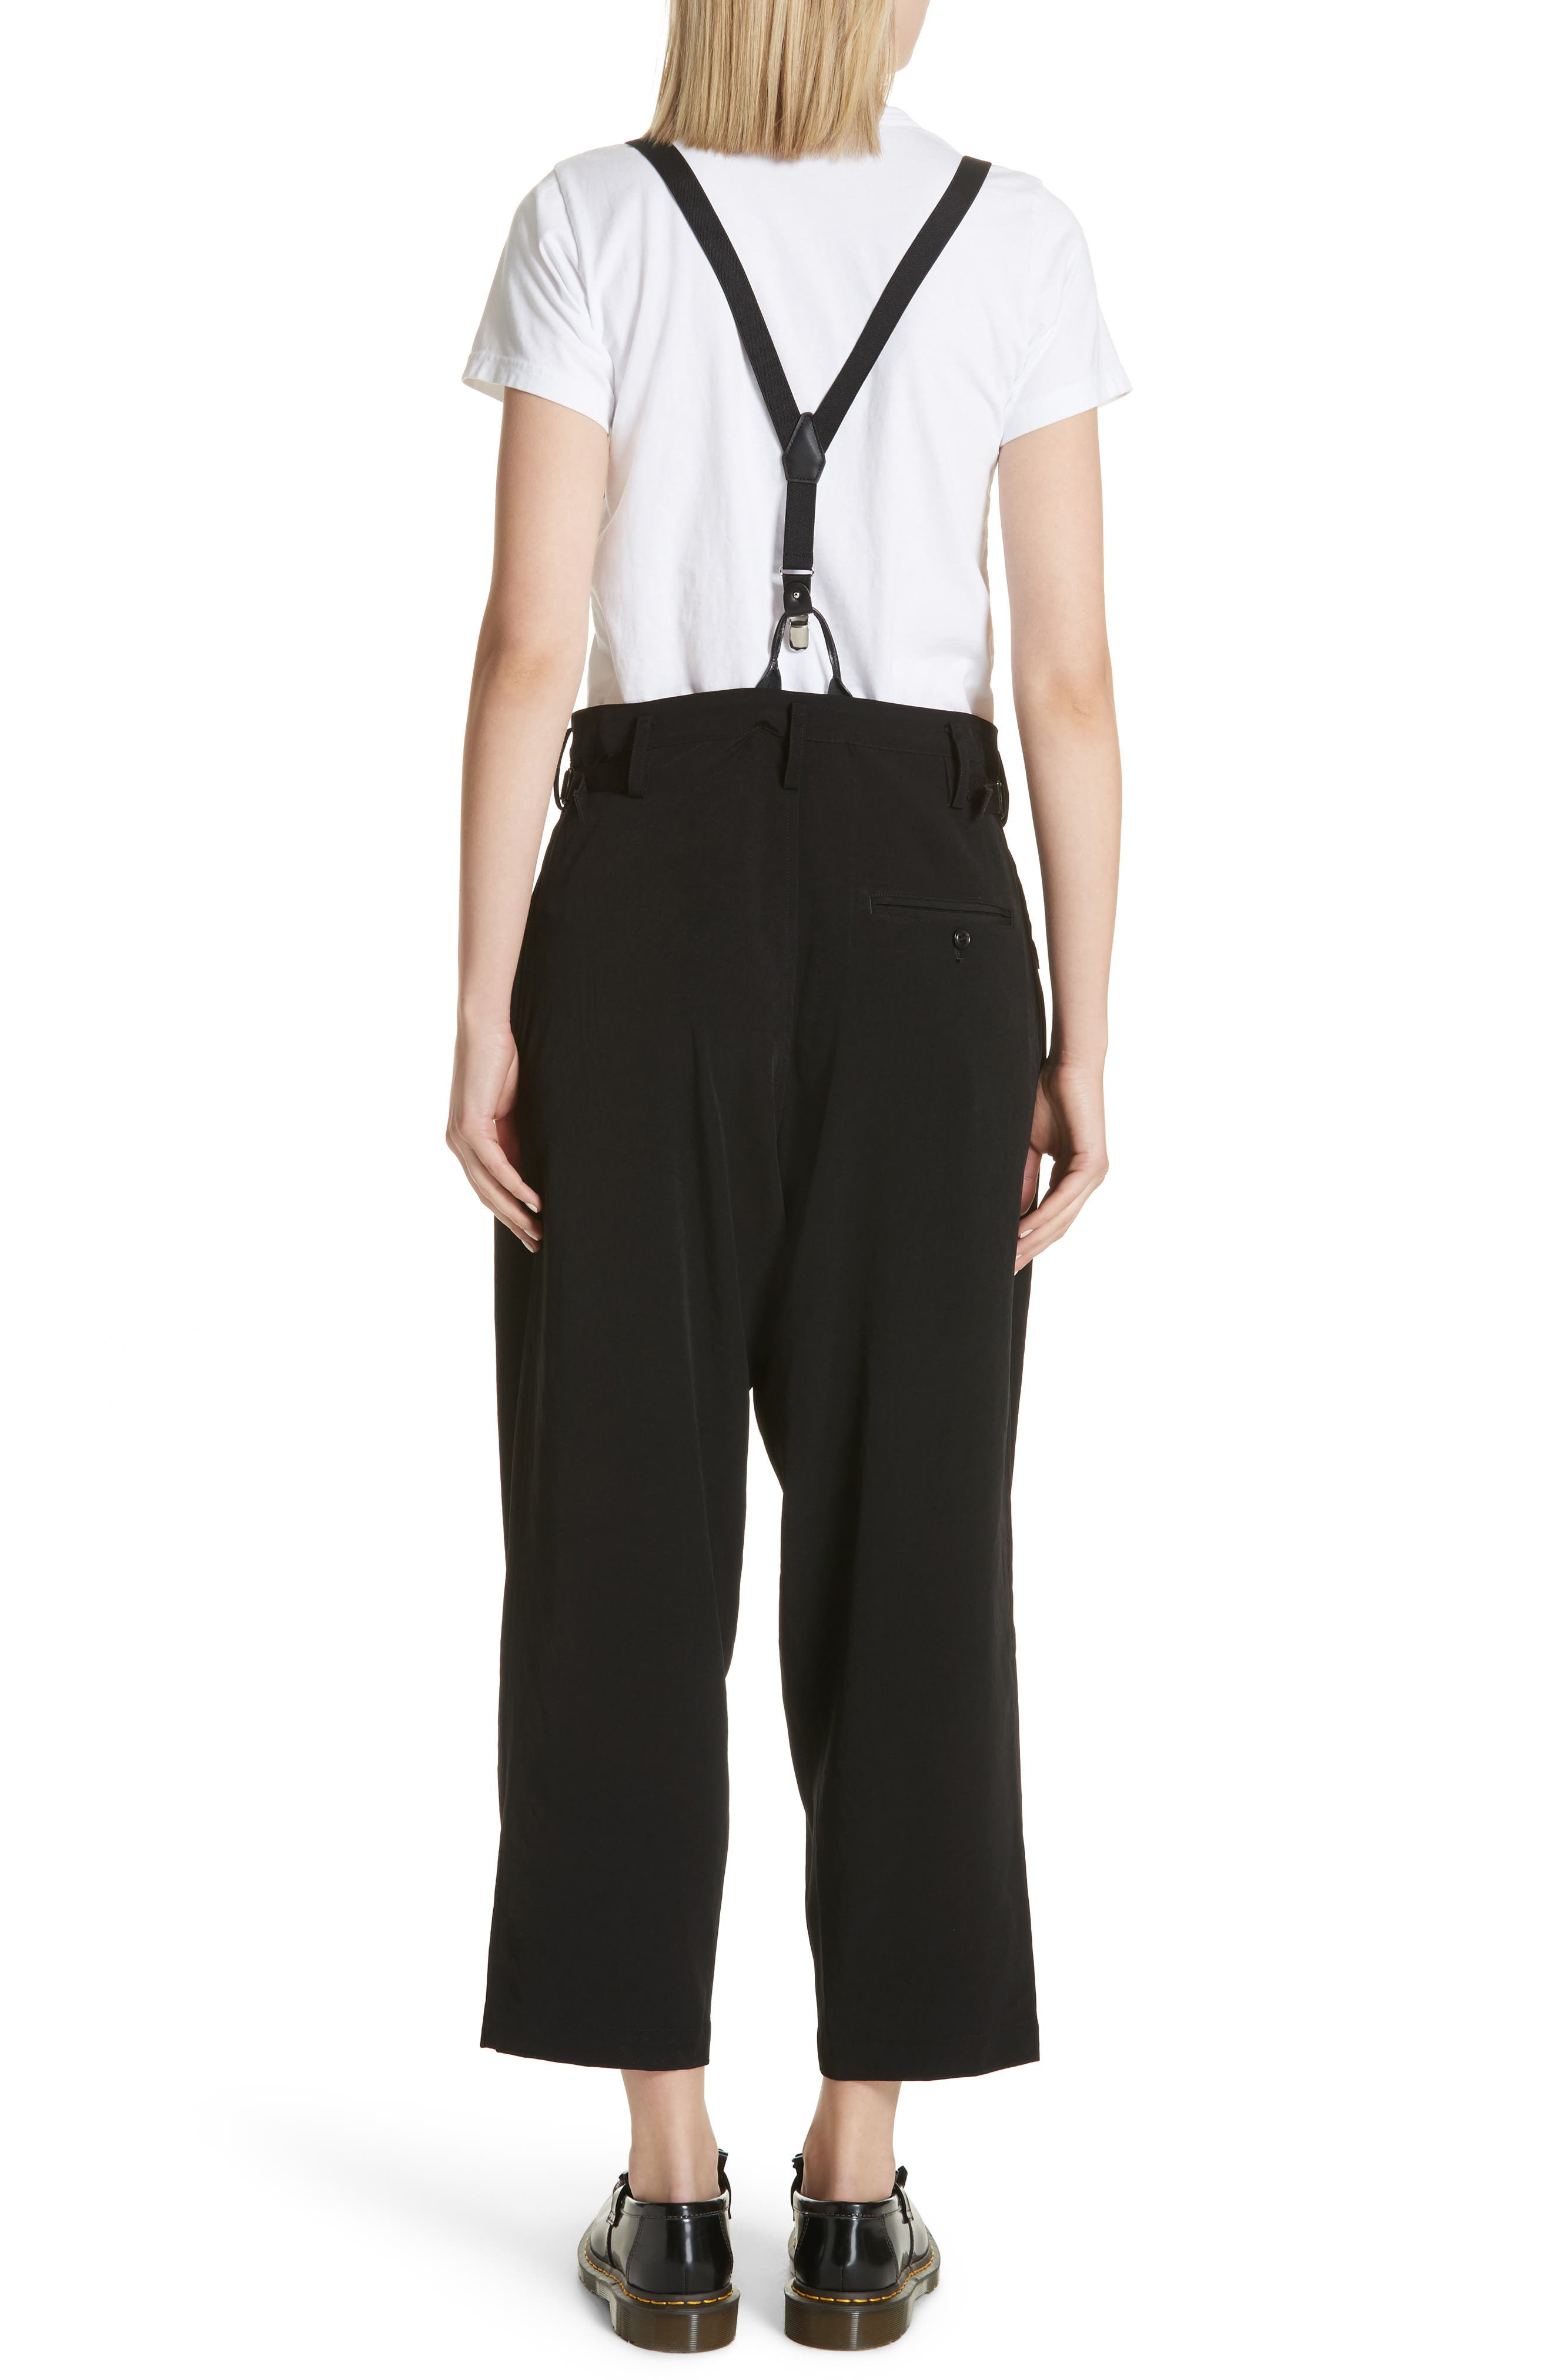 Pants with Suspenders,                             Alternate thumbnail 2, color,                             001